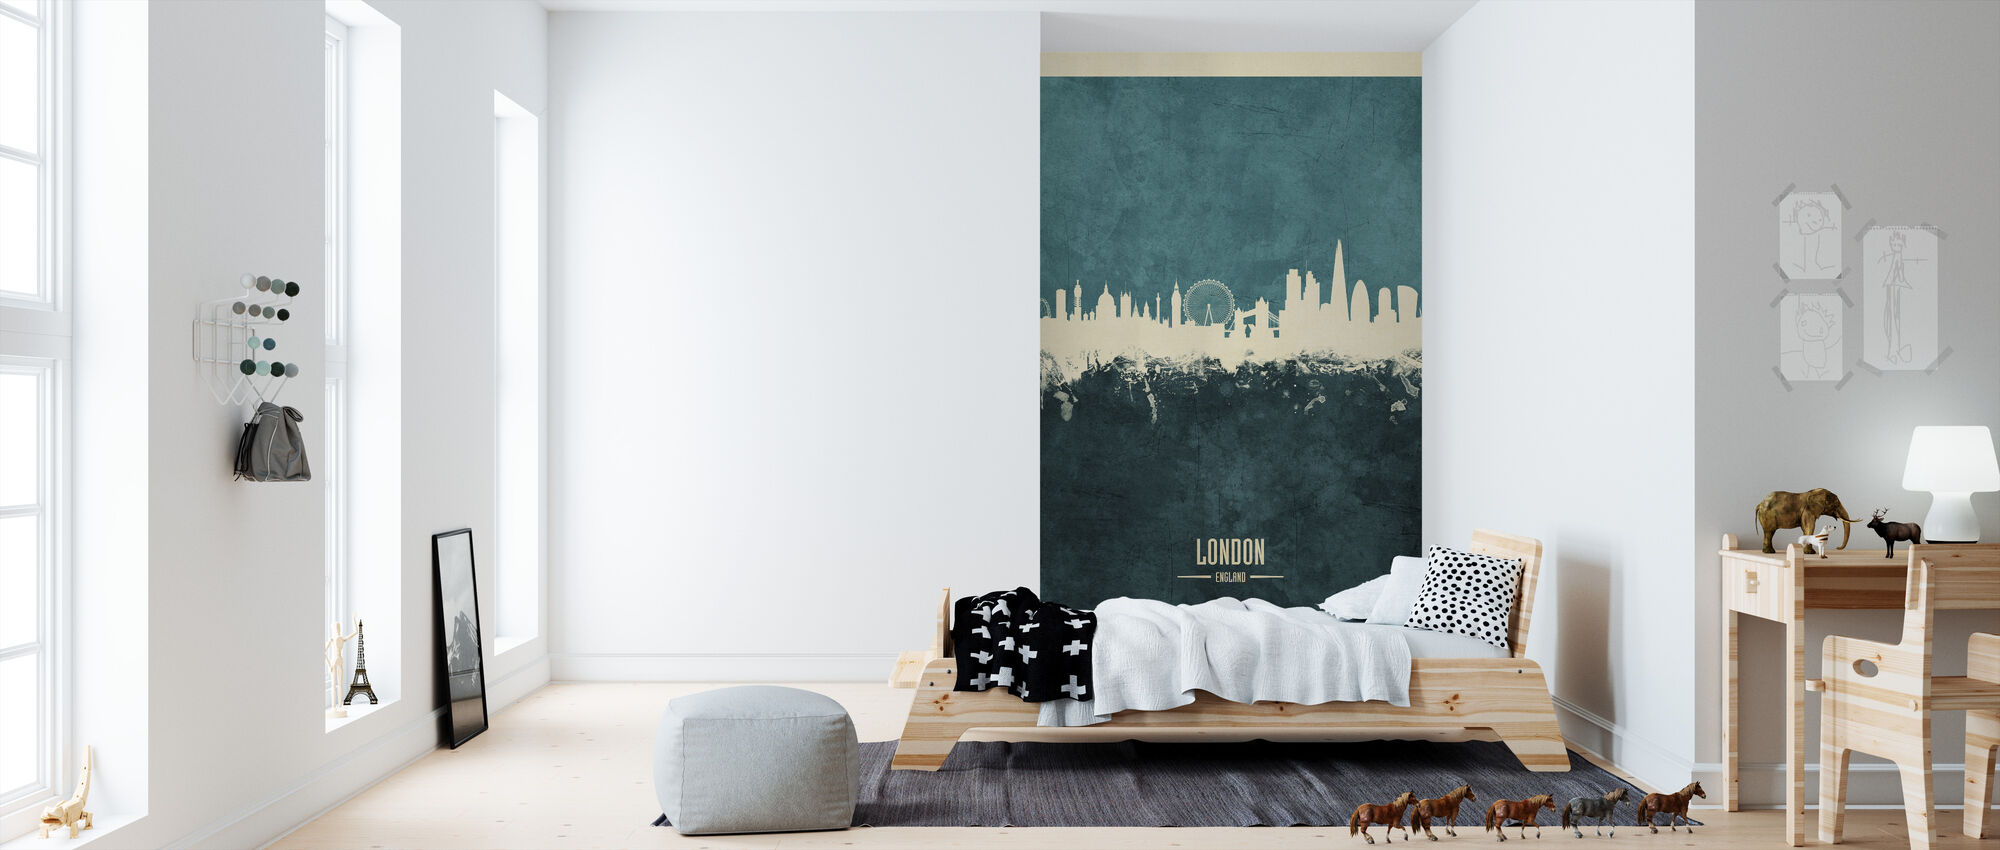 London England Skyline Blue - Wallpaper - Kids Room